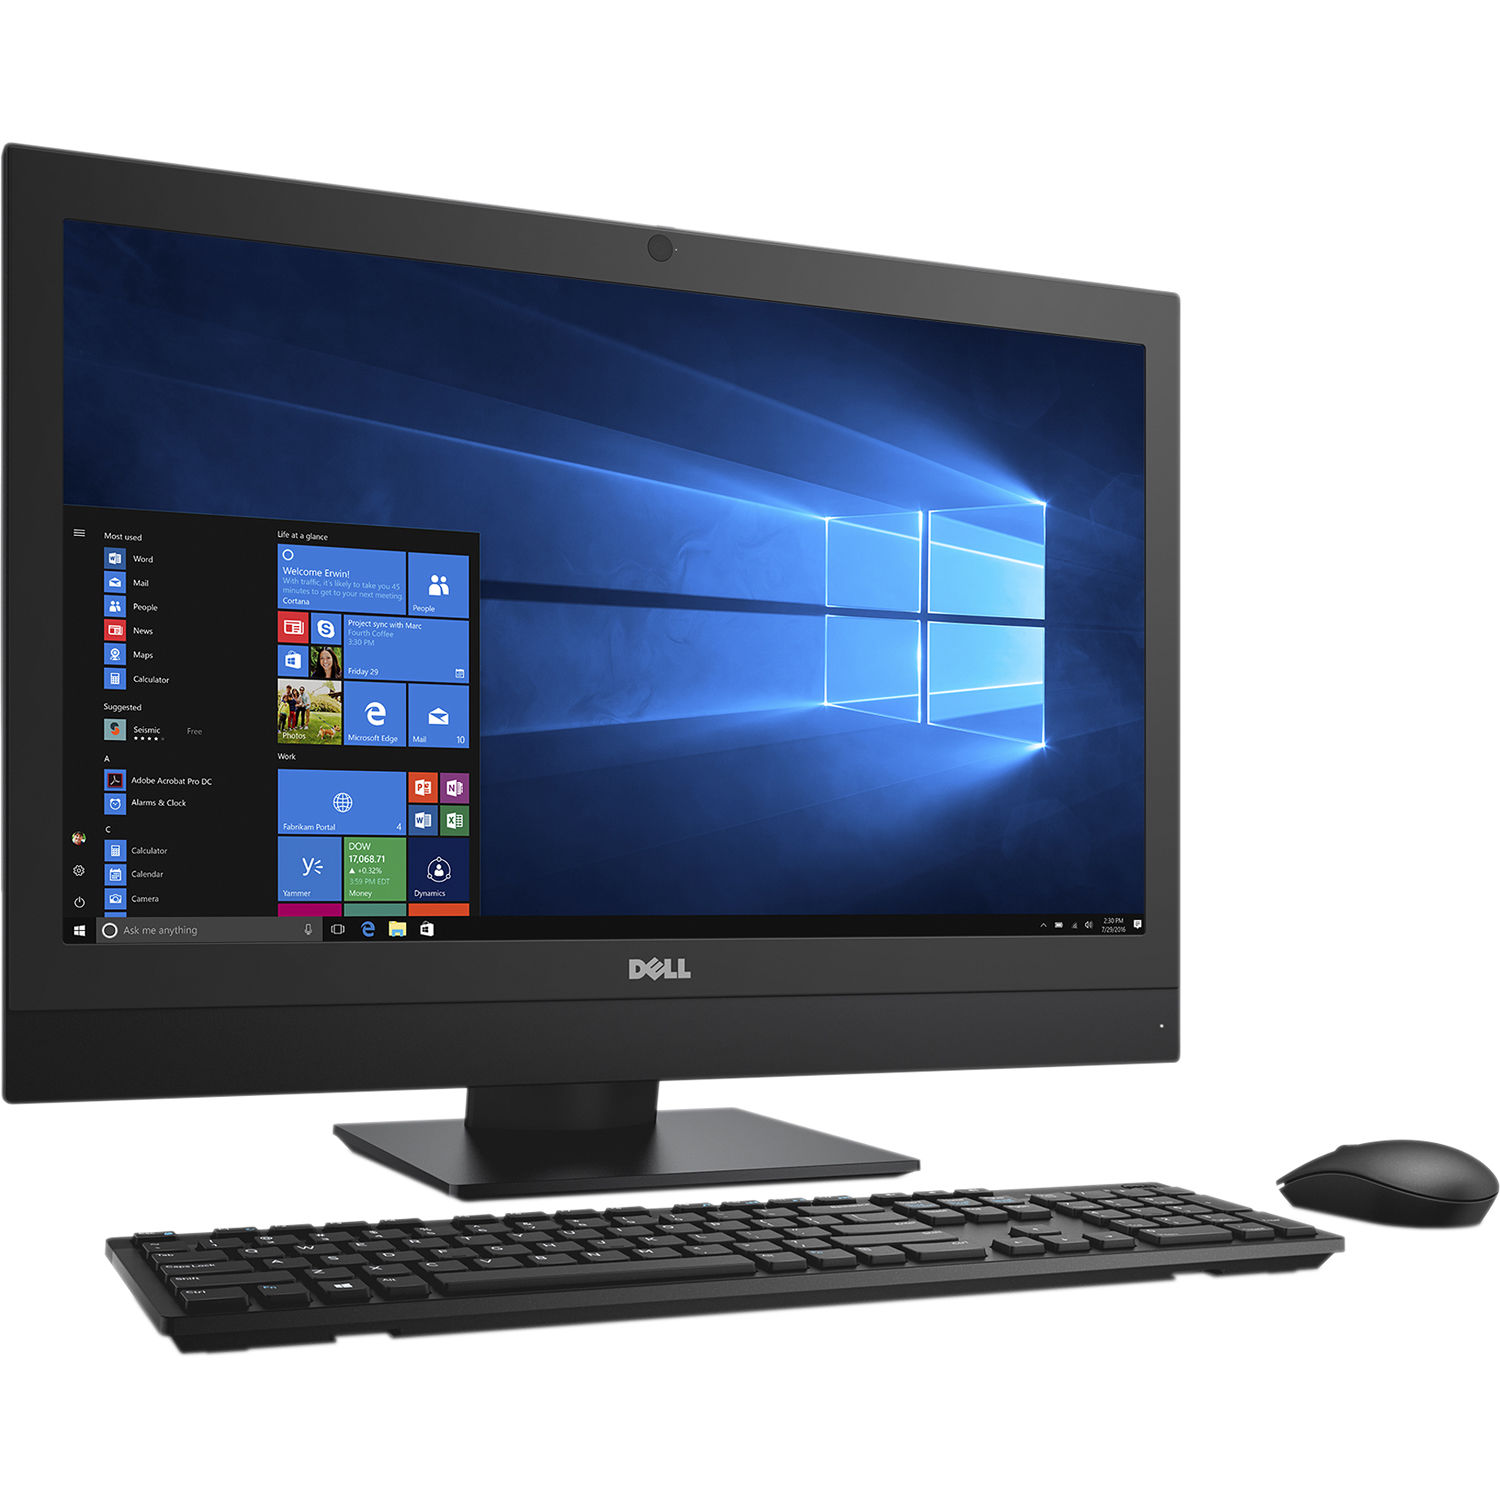 dell 23 8 optiplex 7450 all in one desktop computer 040p6. Black Bedroom Furniture Sets. Home Design Ideas